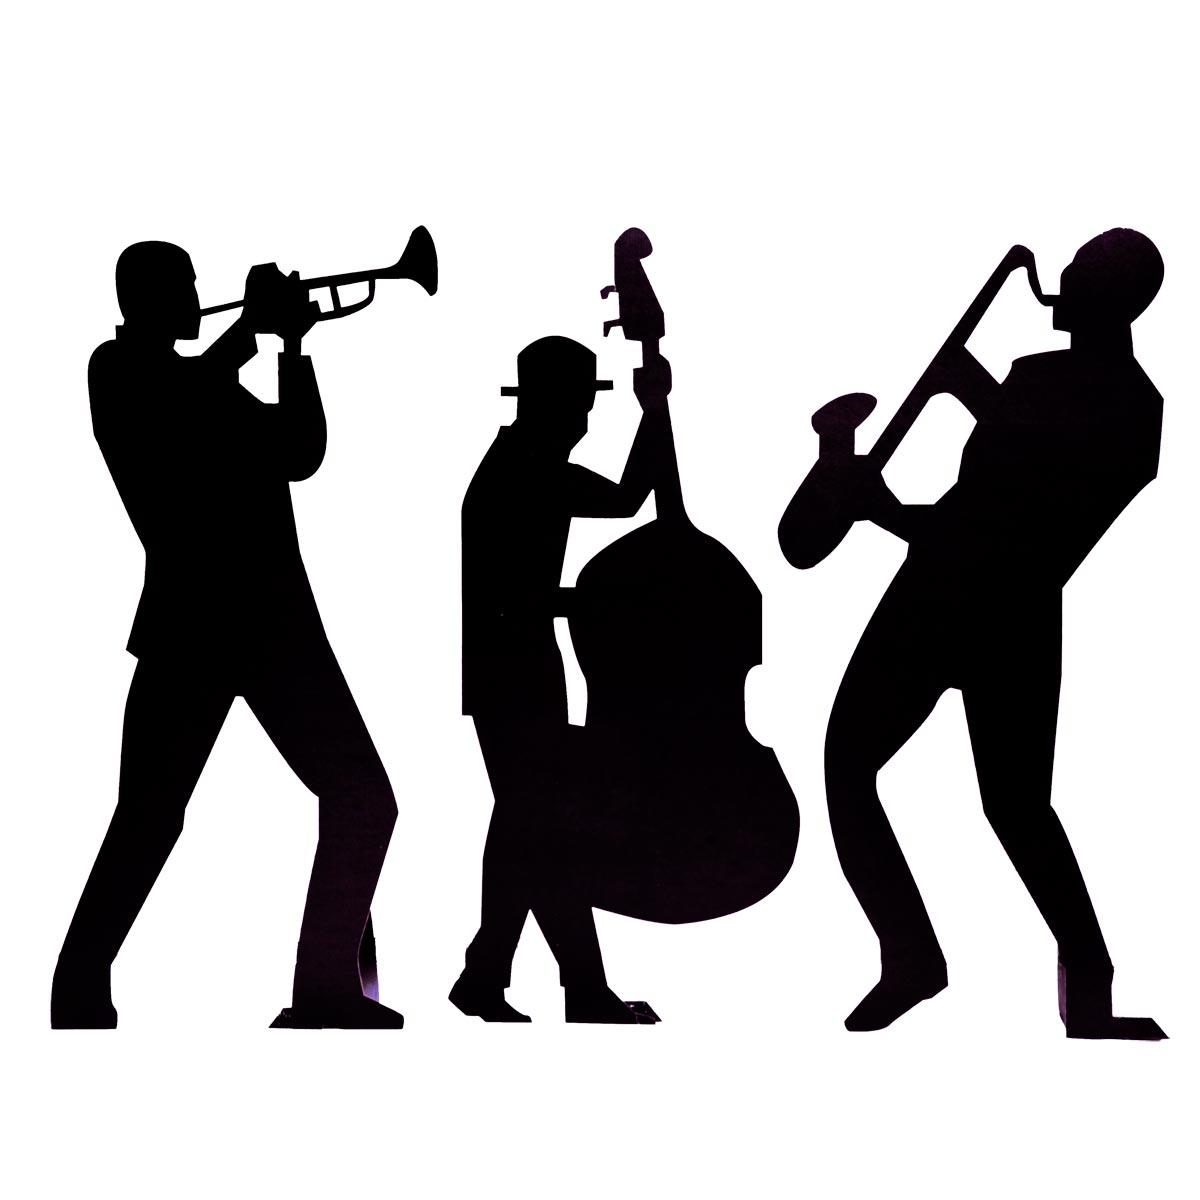 marching band clipart silhouette at getdrawings com free for rh getdrawings com band clip art free band clip art free